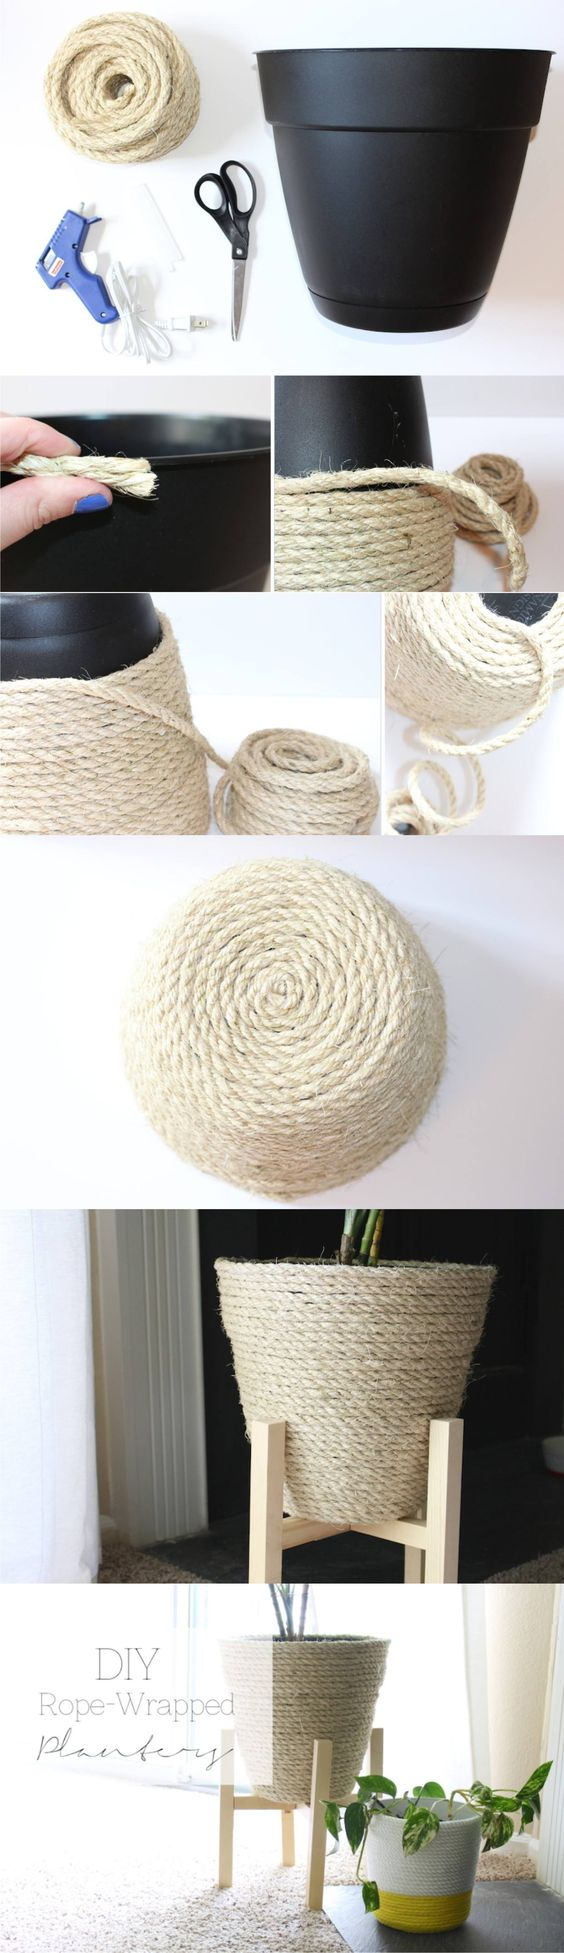 nique diy decoration ideas with rope (17)